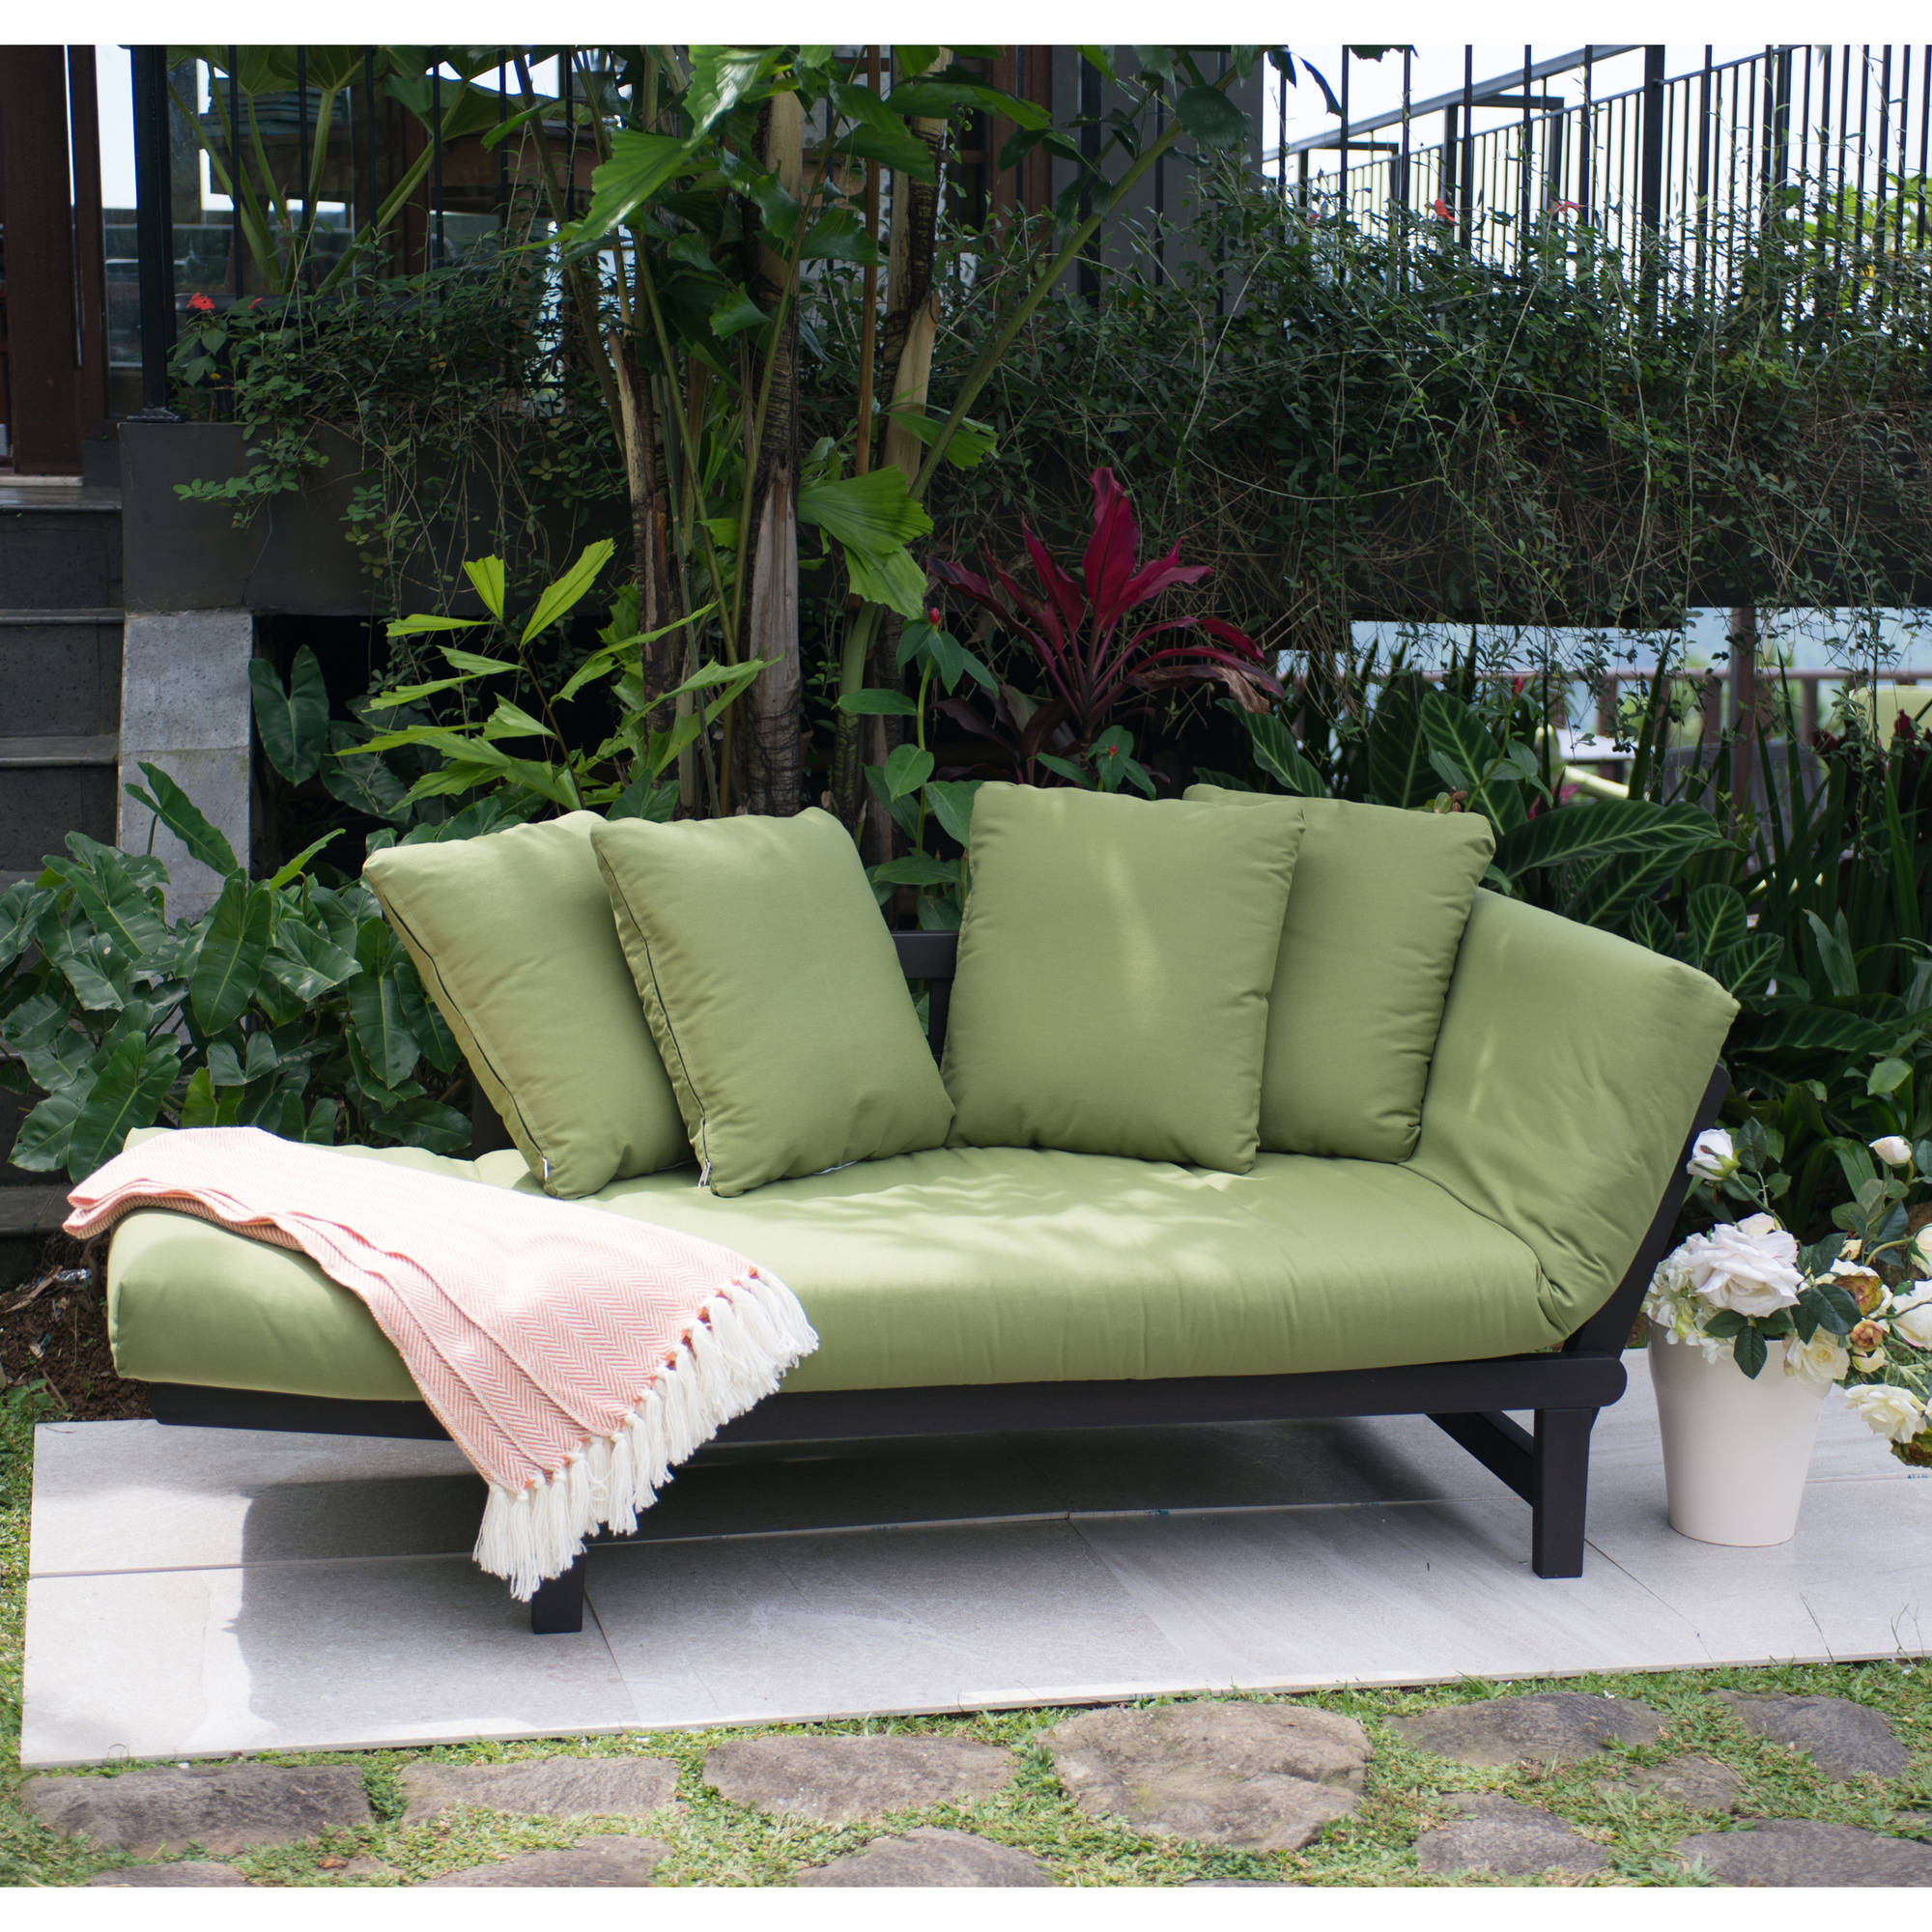 Best And Newest Patio Daybeds With Cushions In Better Homes & Gardens Delahey Outdoor Daybed With Cushions – Green (View 2 of 20)